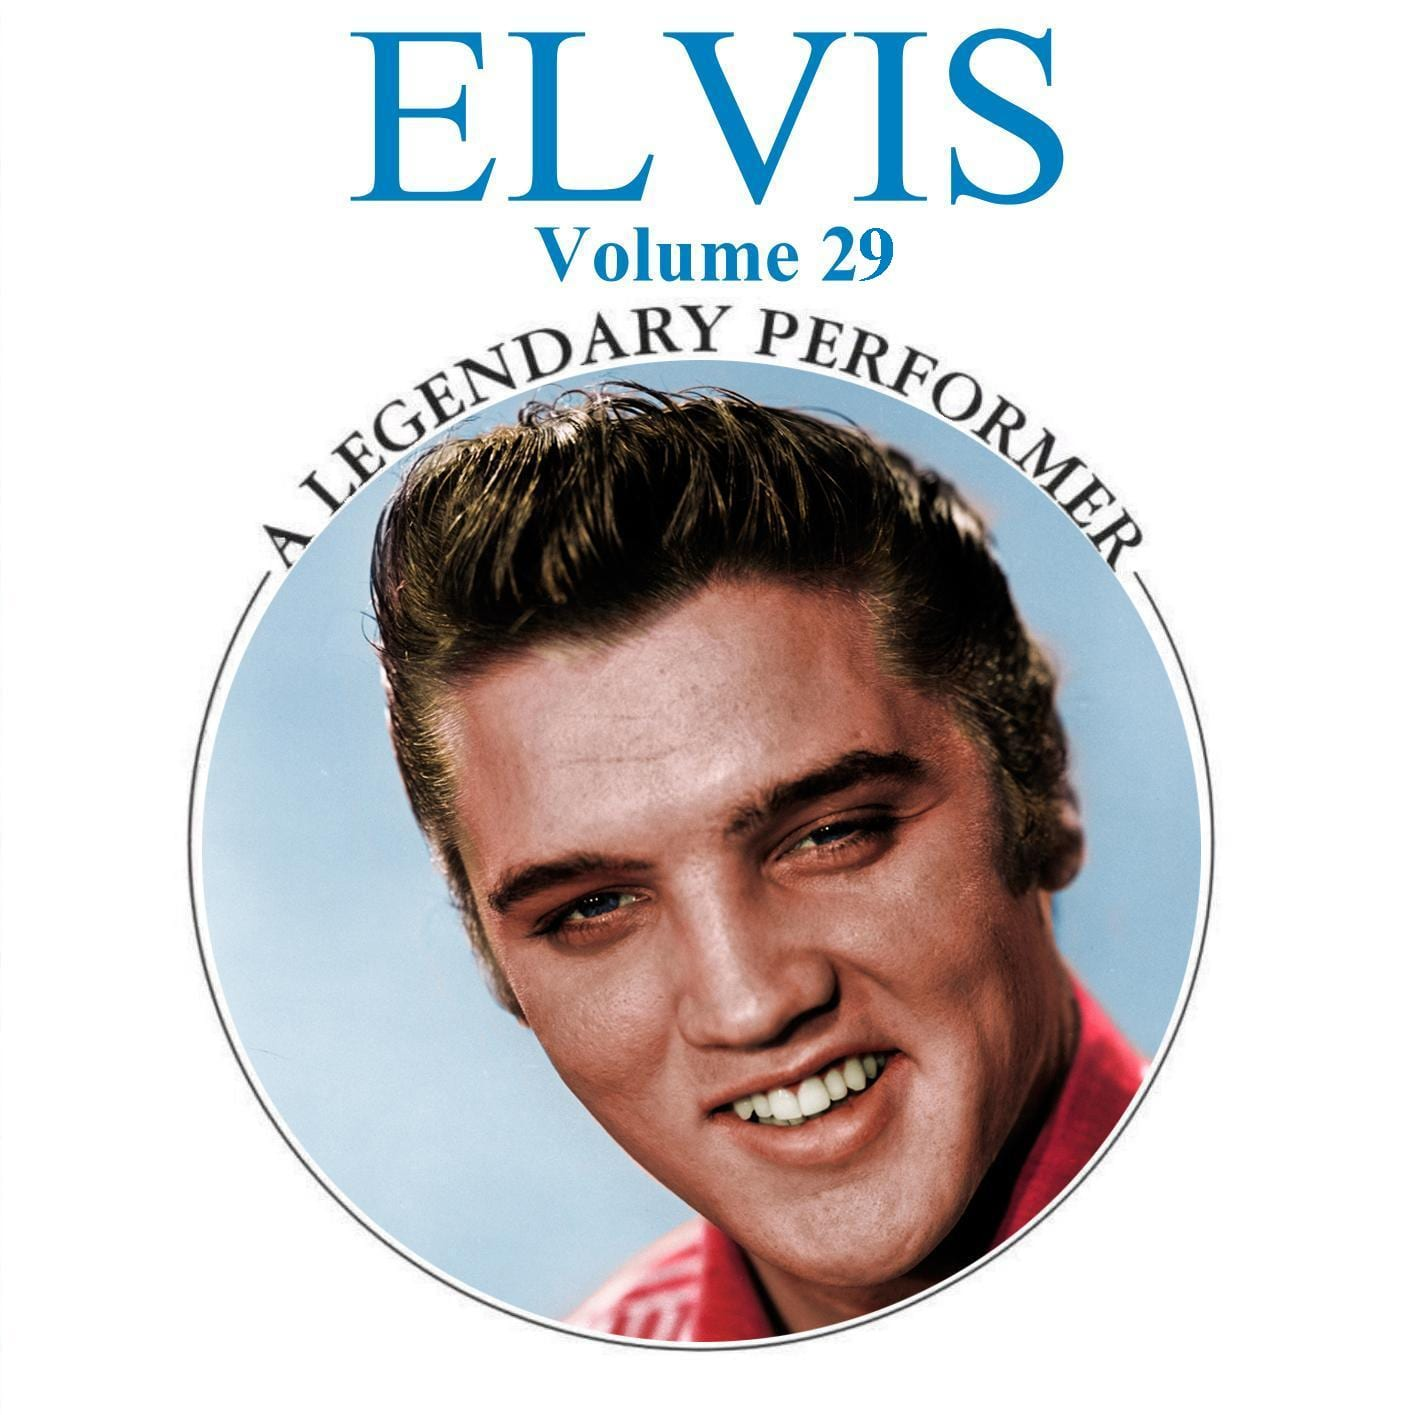 Elvis Presley - A Legendary Performer, Vol. 30 (2014) CD 10